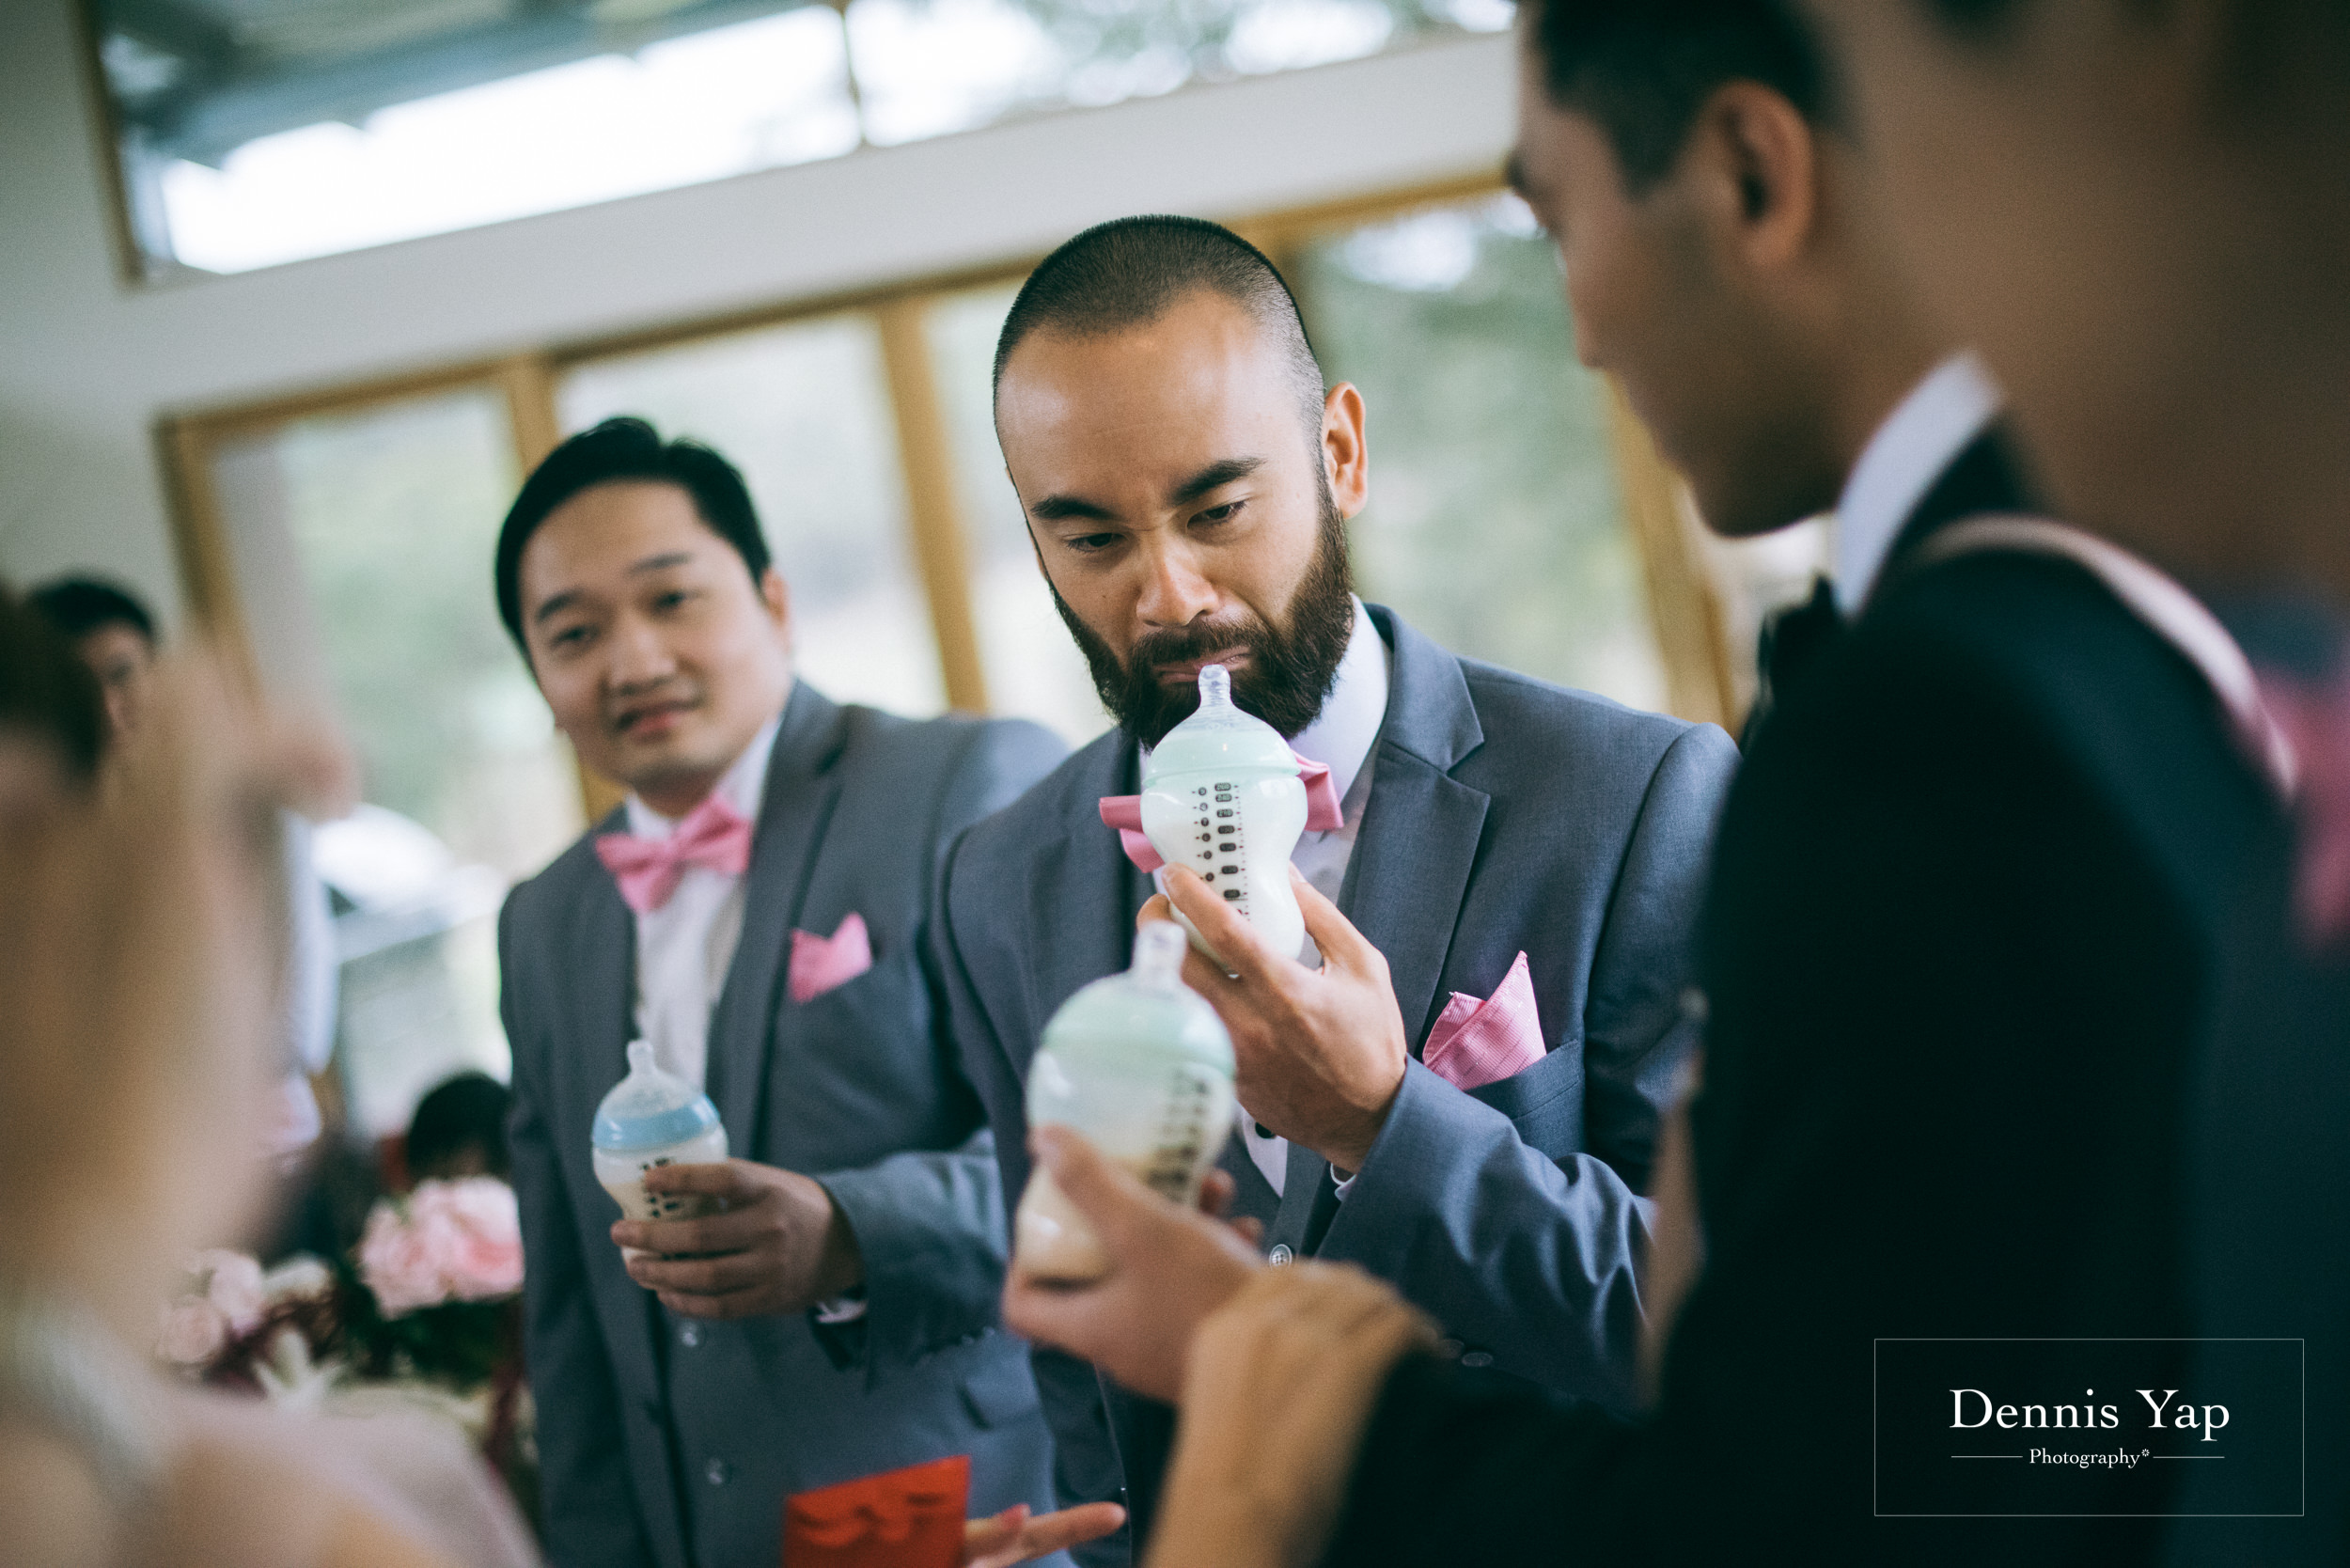 tony daphne wedding day melbourne RACV dennis yap photography malaysia top photographer beloved real moments-14.jpg